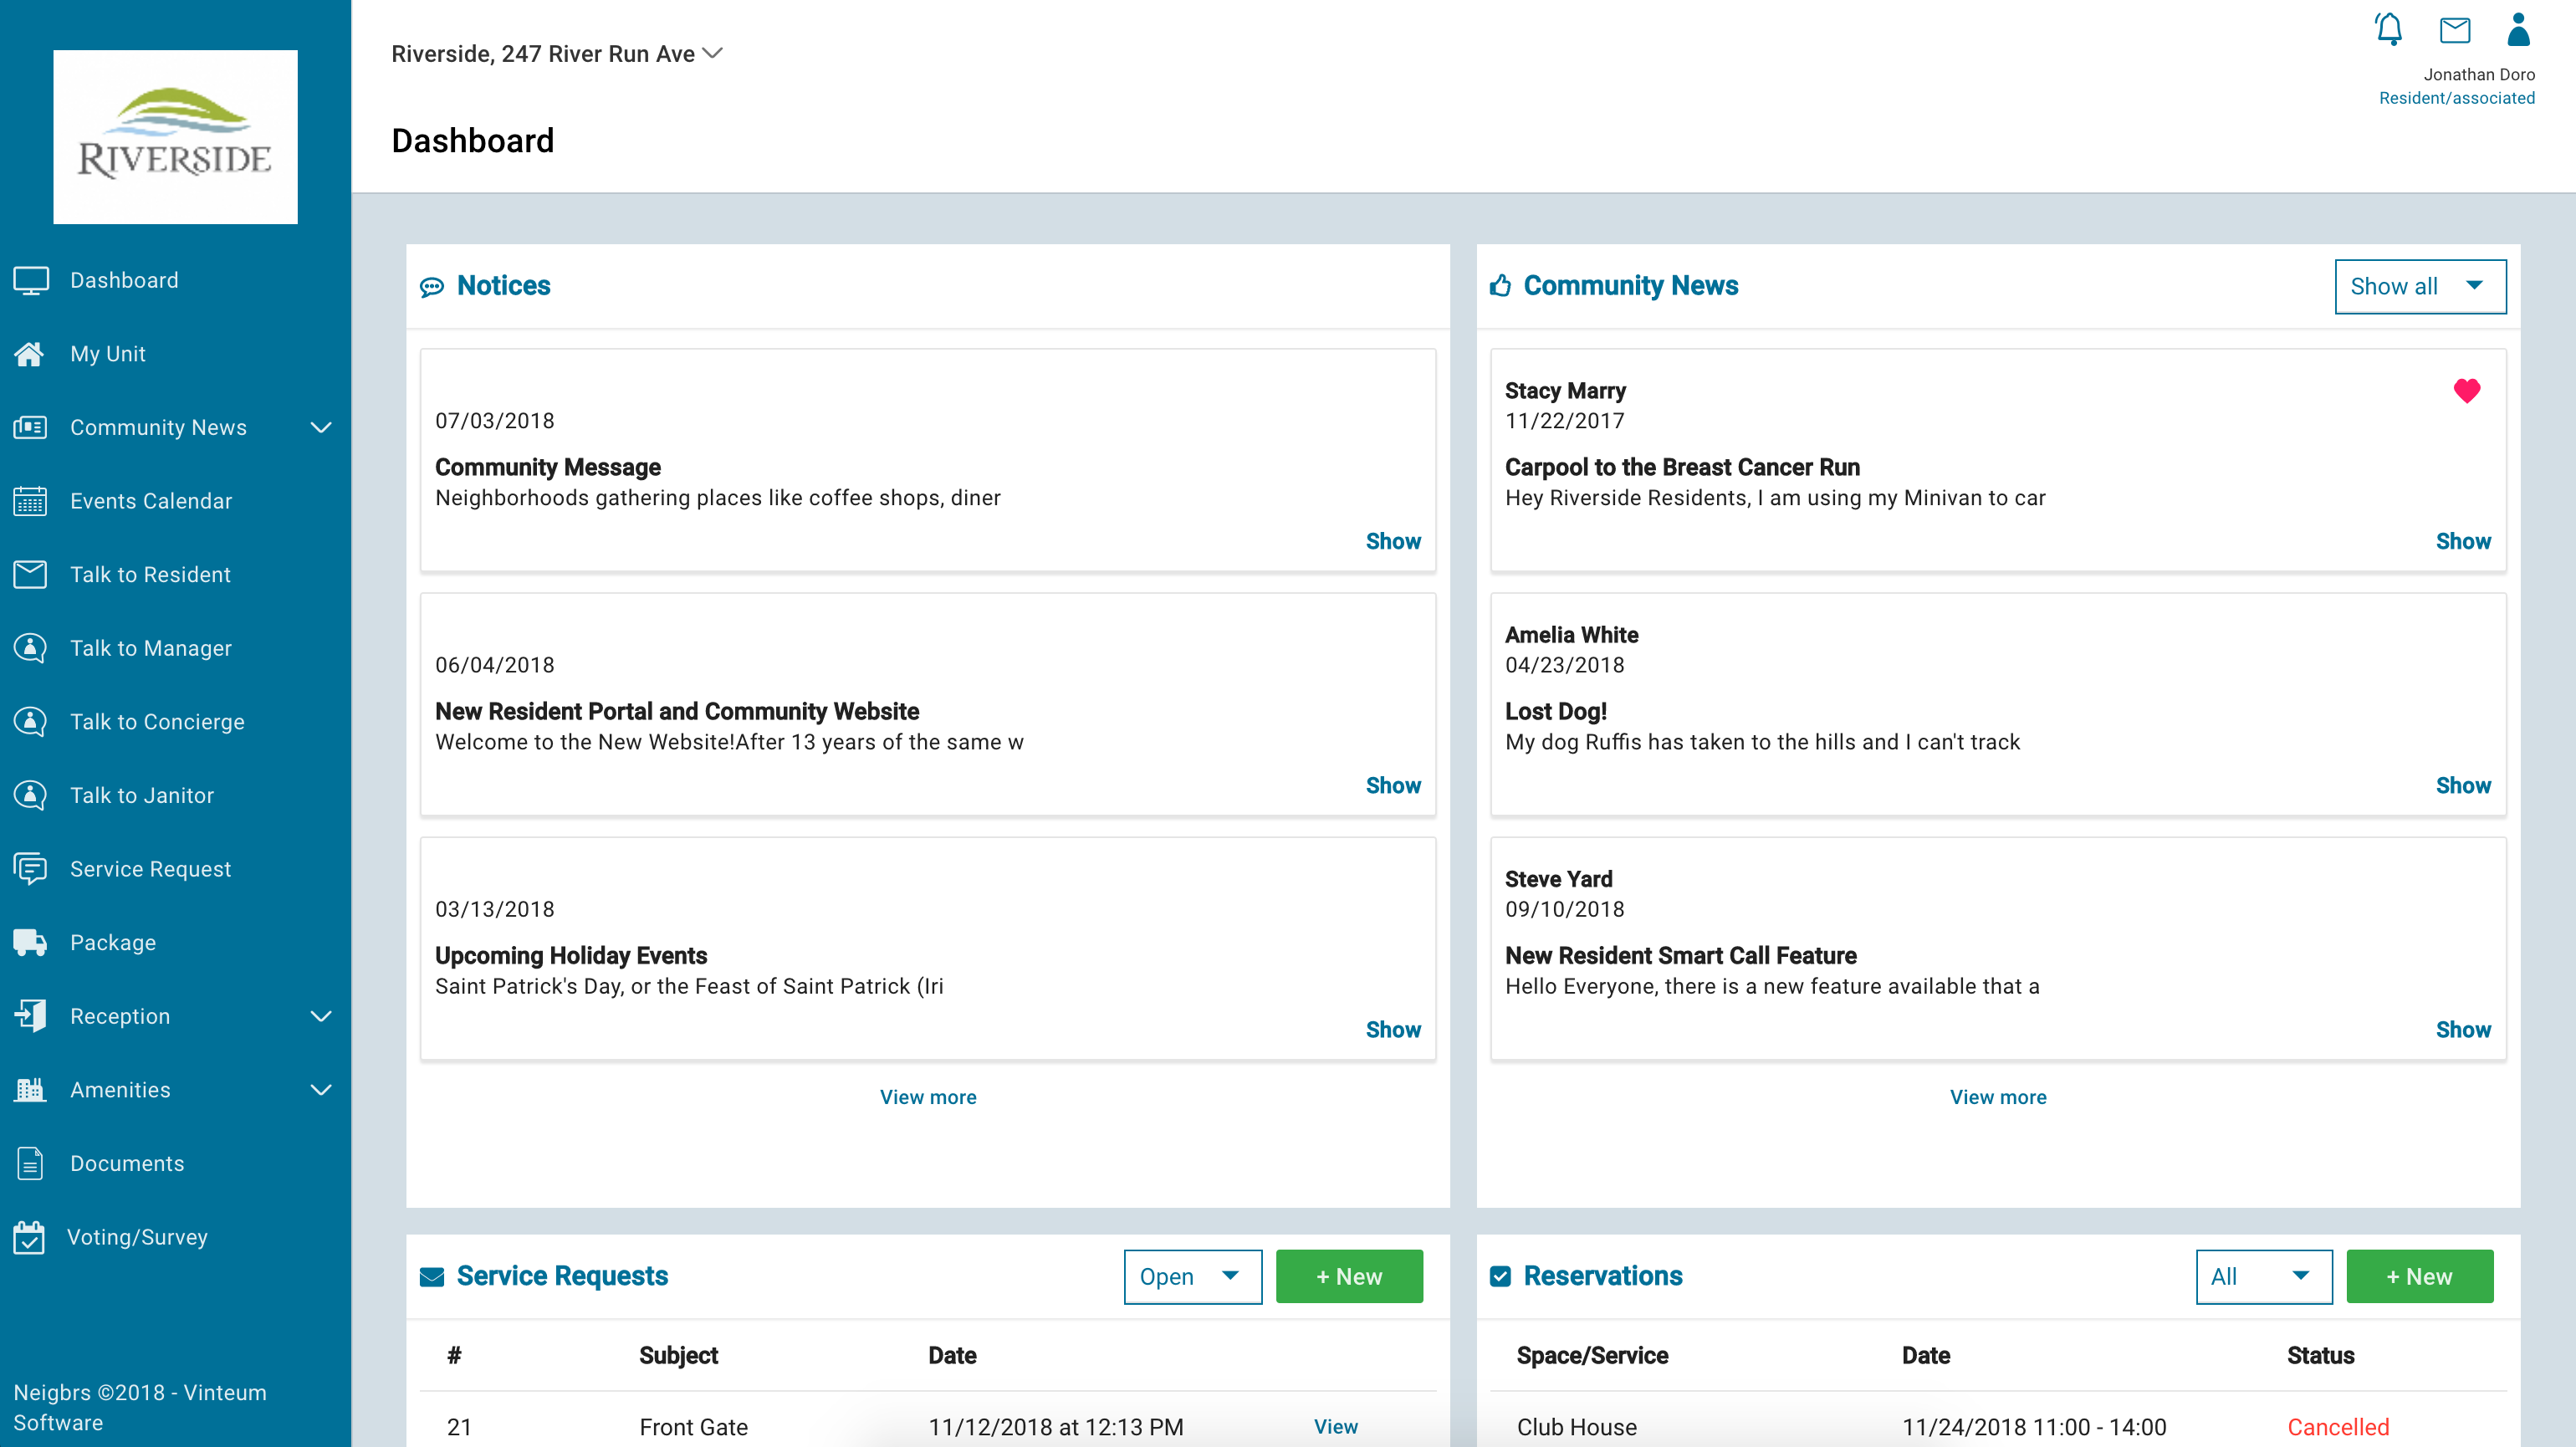 The dashboard shows an overview of notices, community news, service requests and amenity reservations